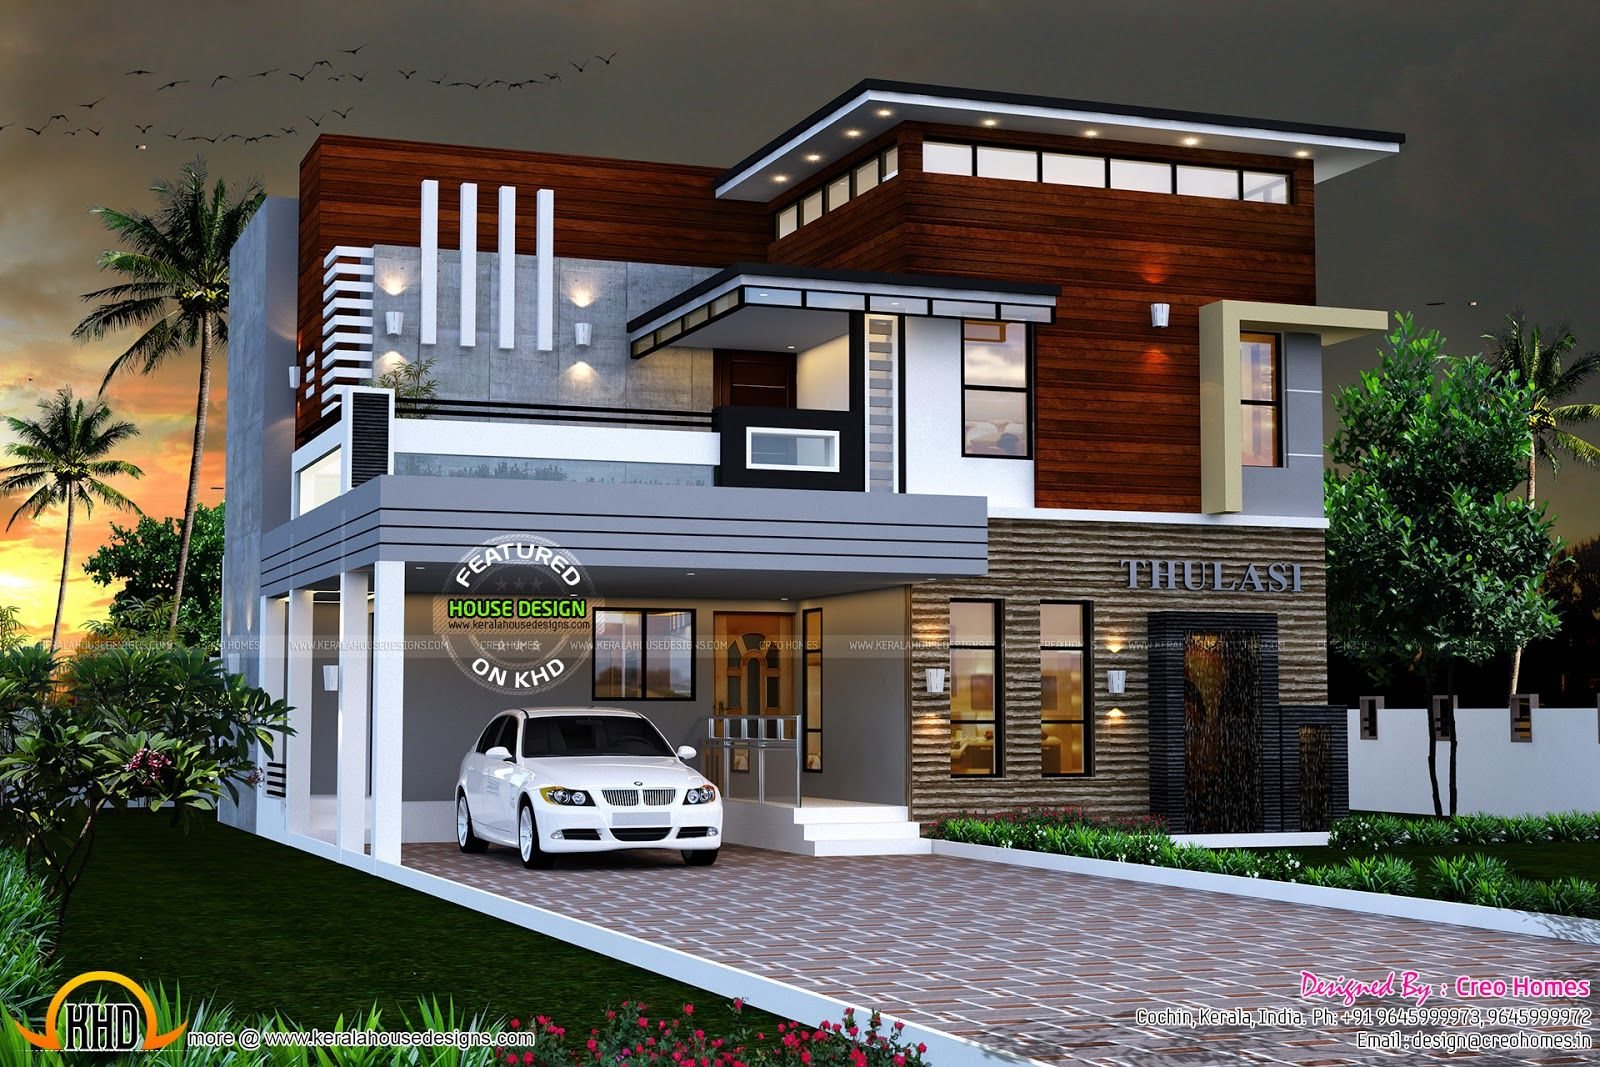 Eterior design modern small house architecture building plan home design kerala house plans home - Cool home decor websites model ...